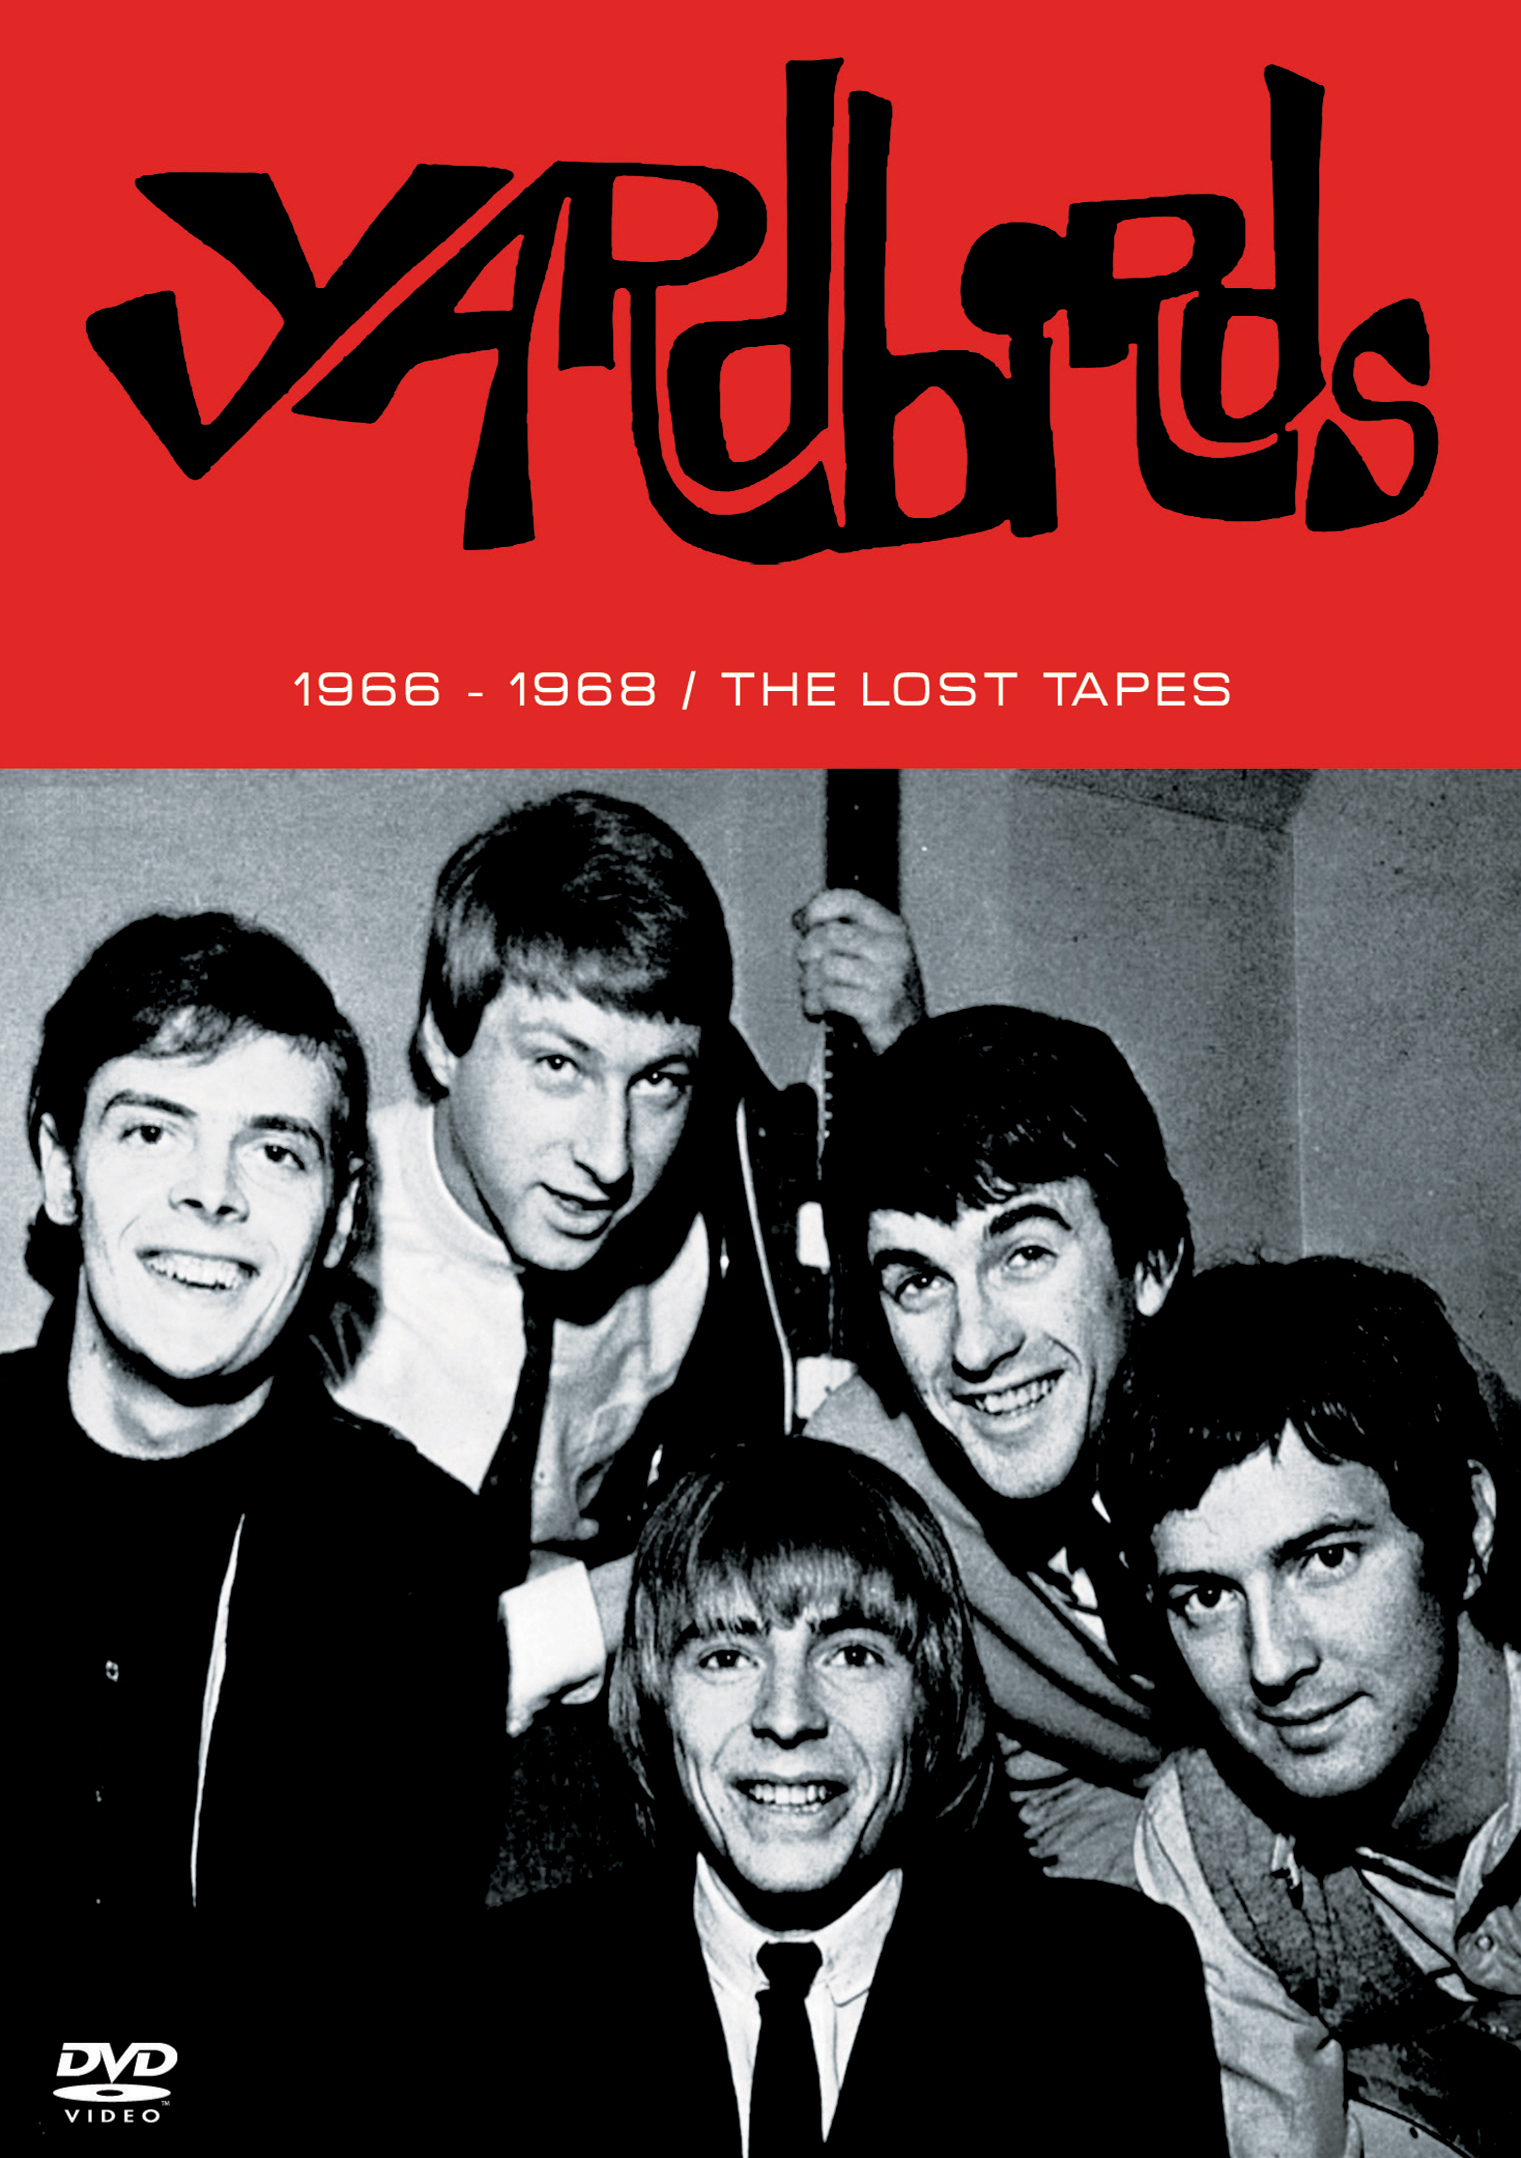 Yardbirds: 1966-1968 - The Lost Tapes